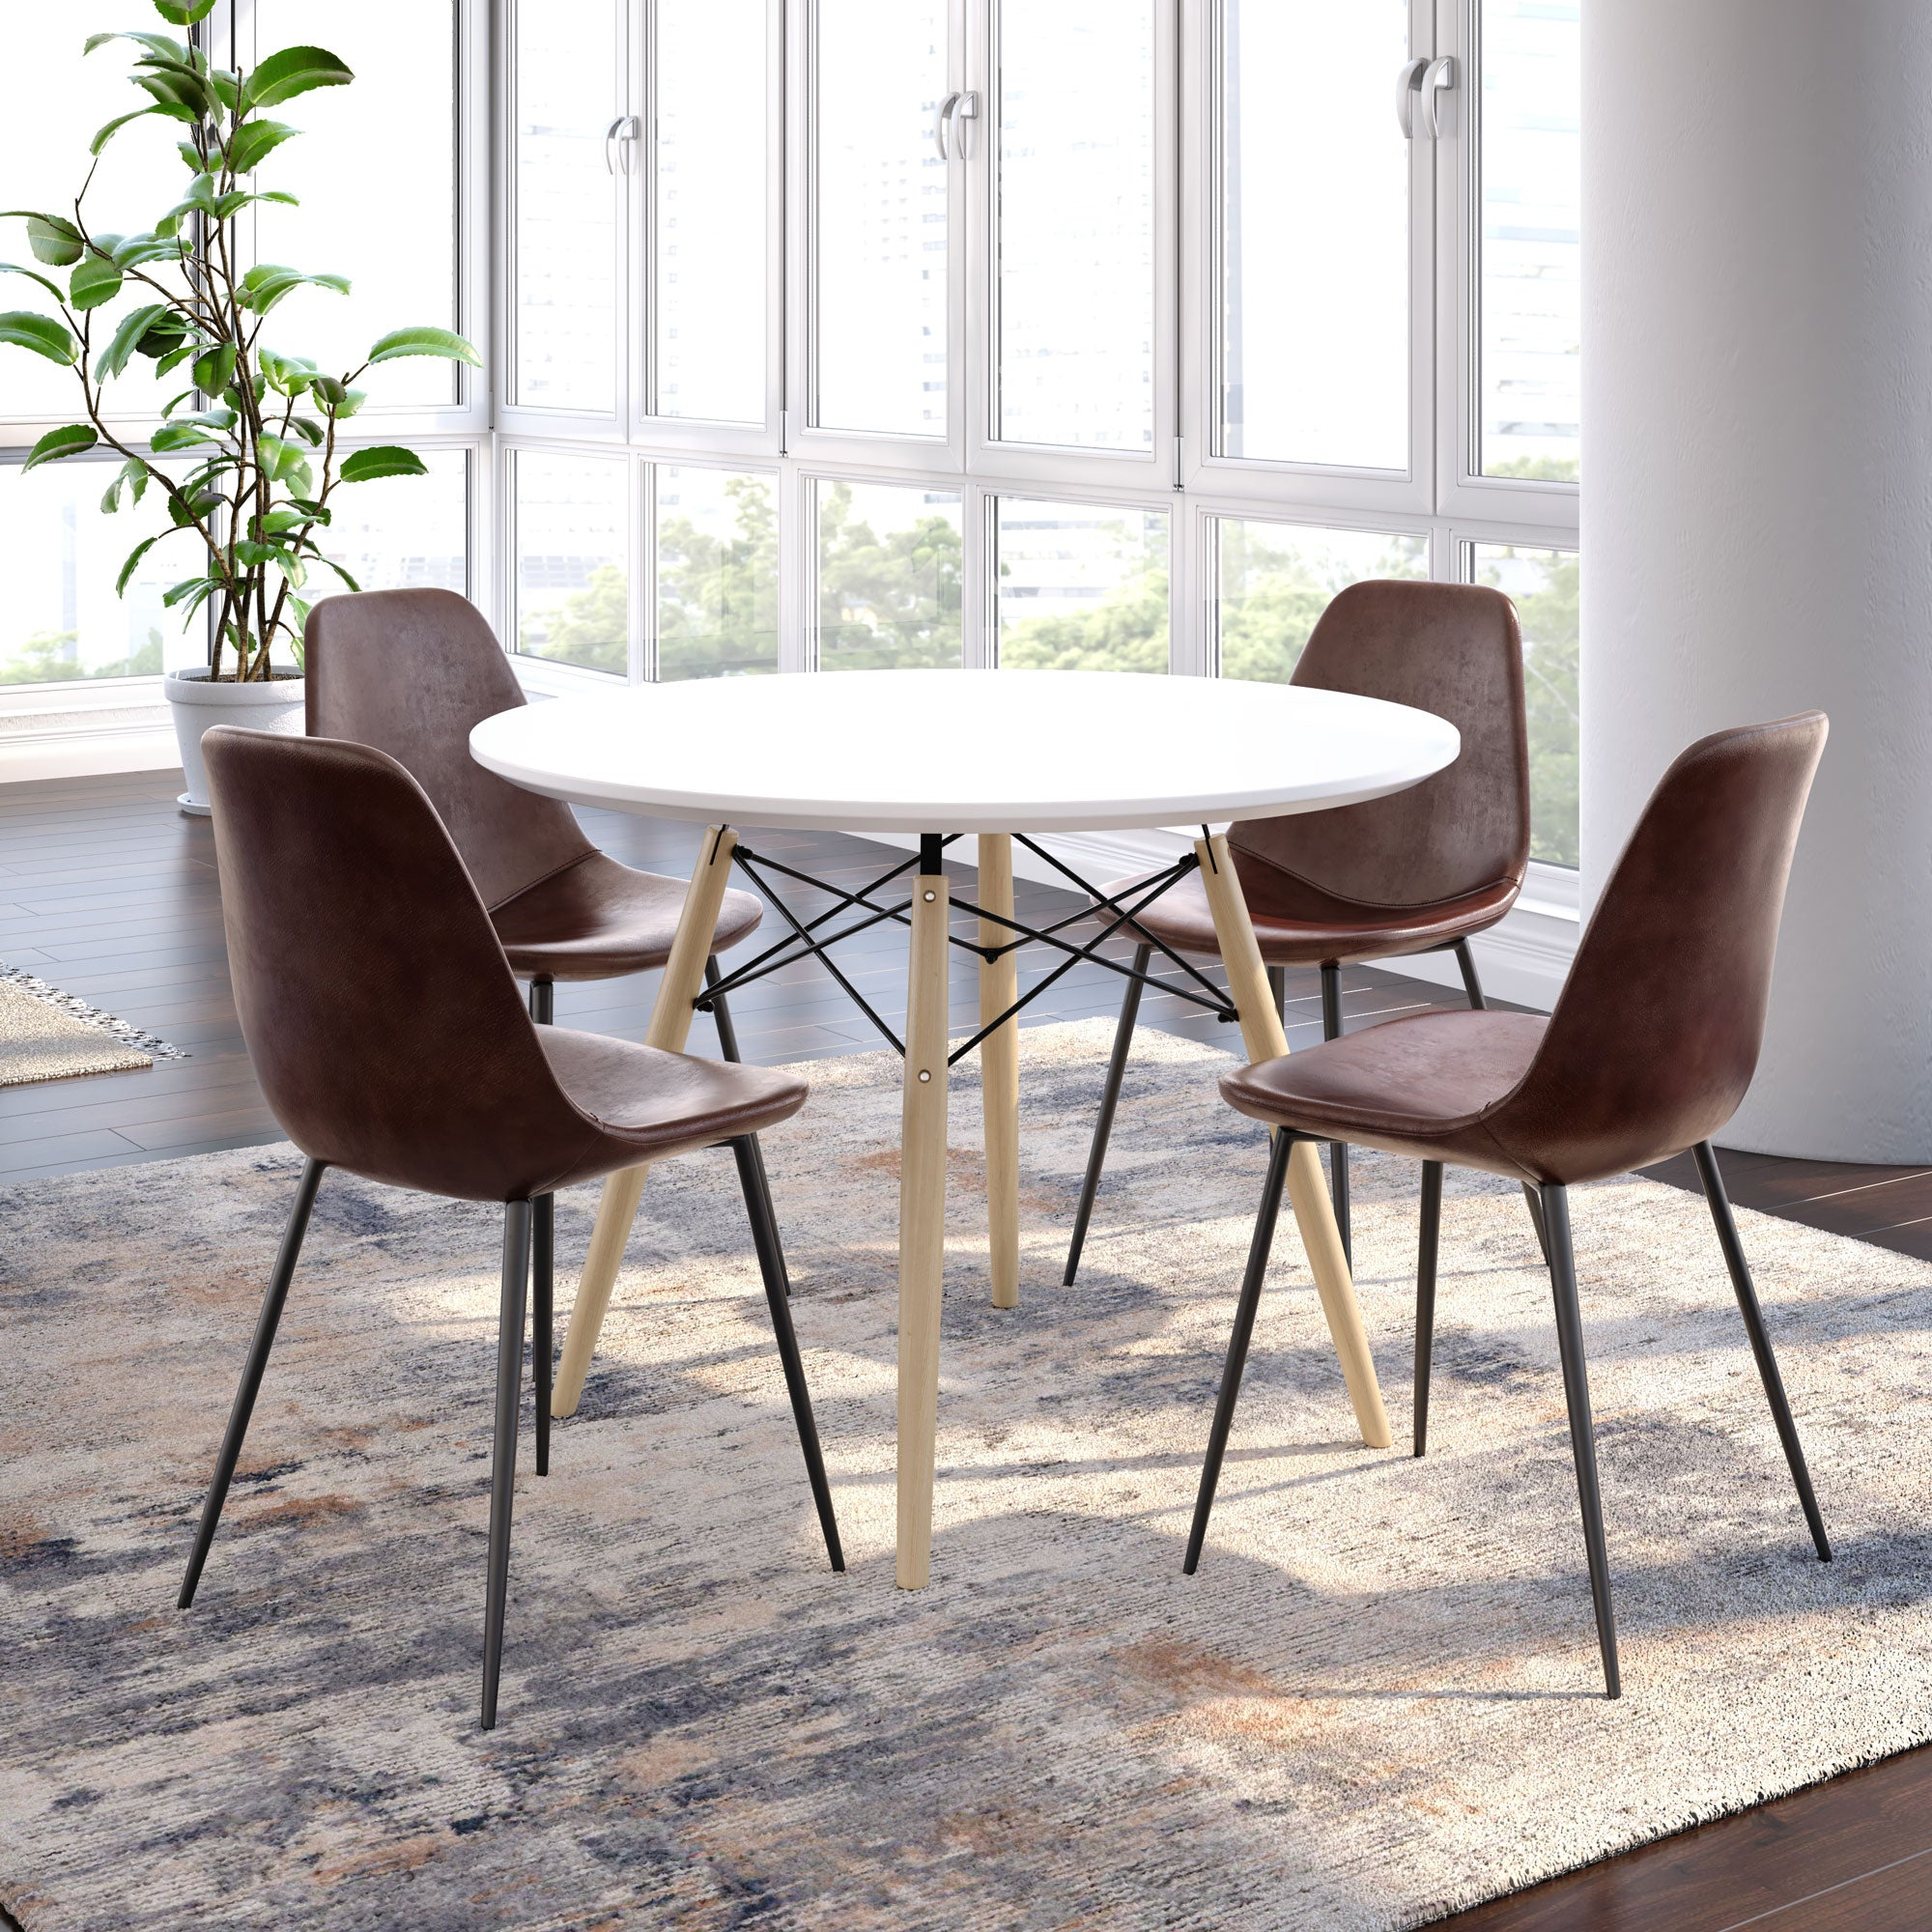 Mabil Dining Table